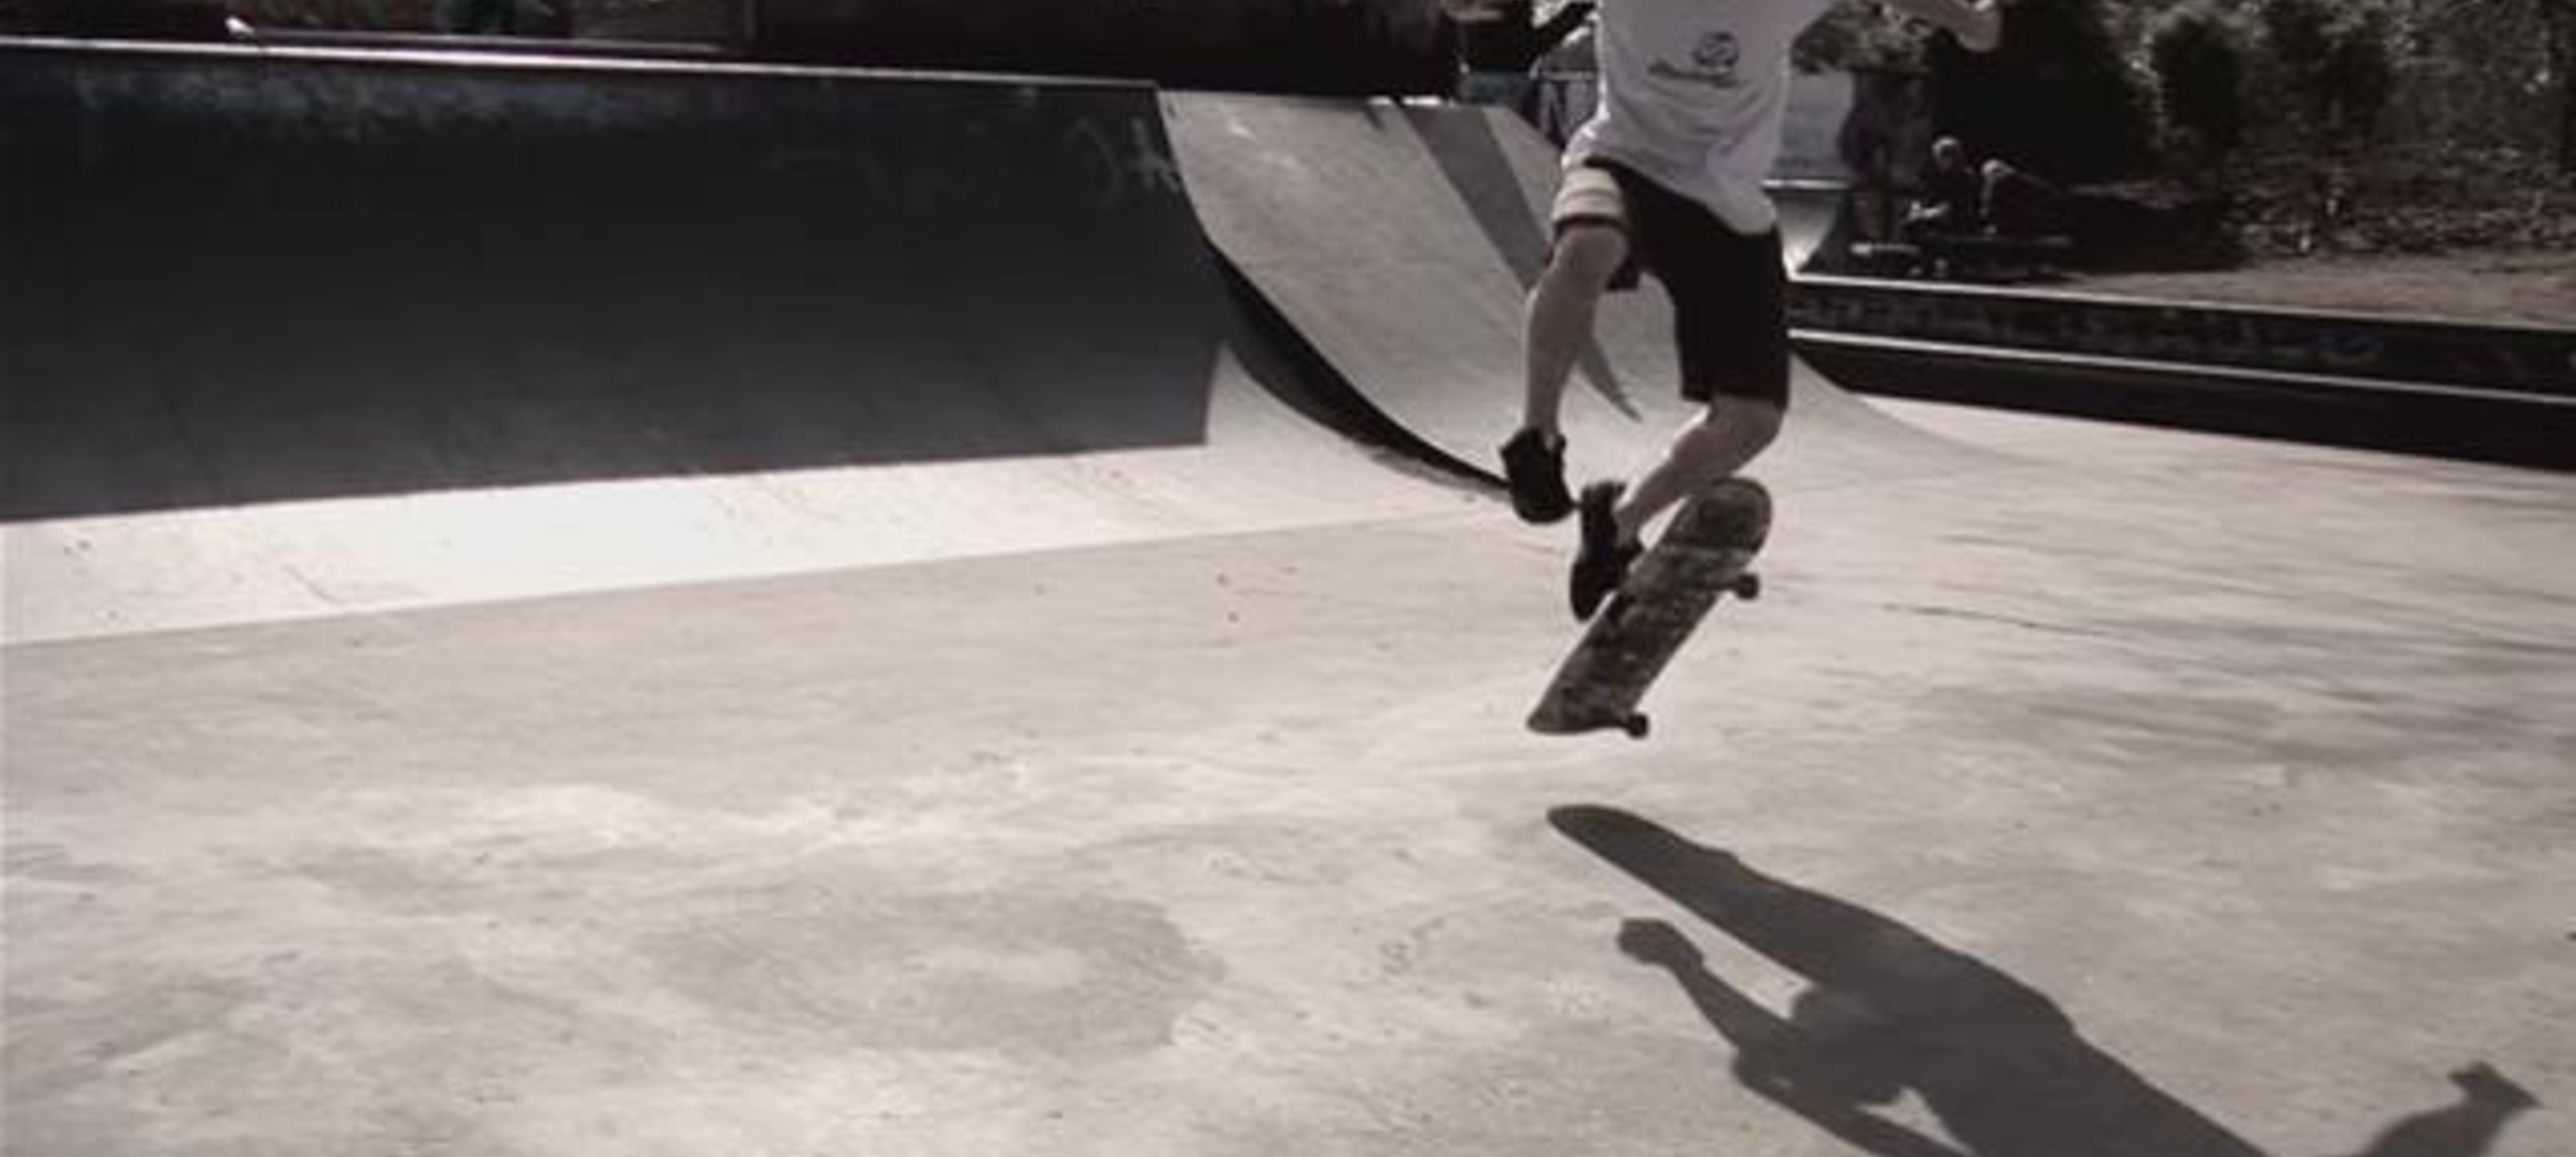 BHouse Trick Of The Week - The Shuv It